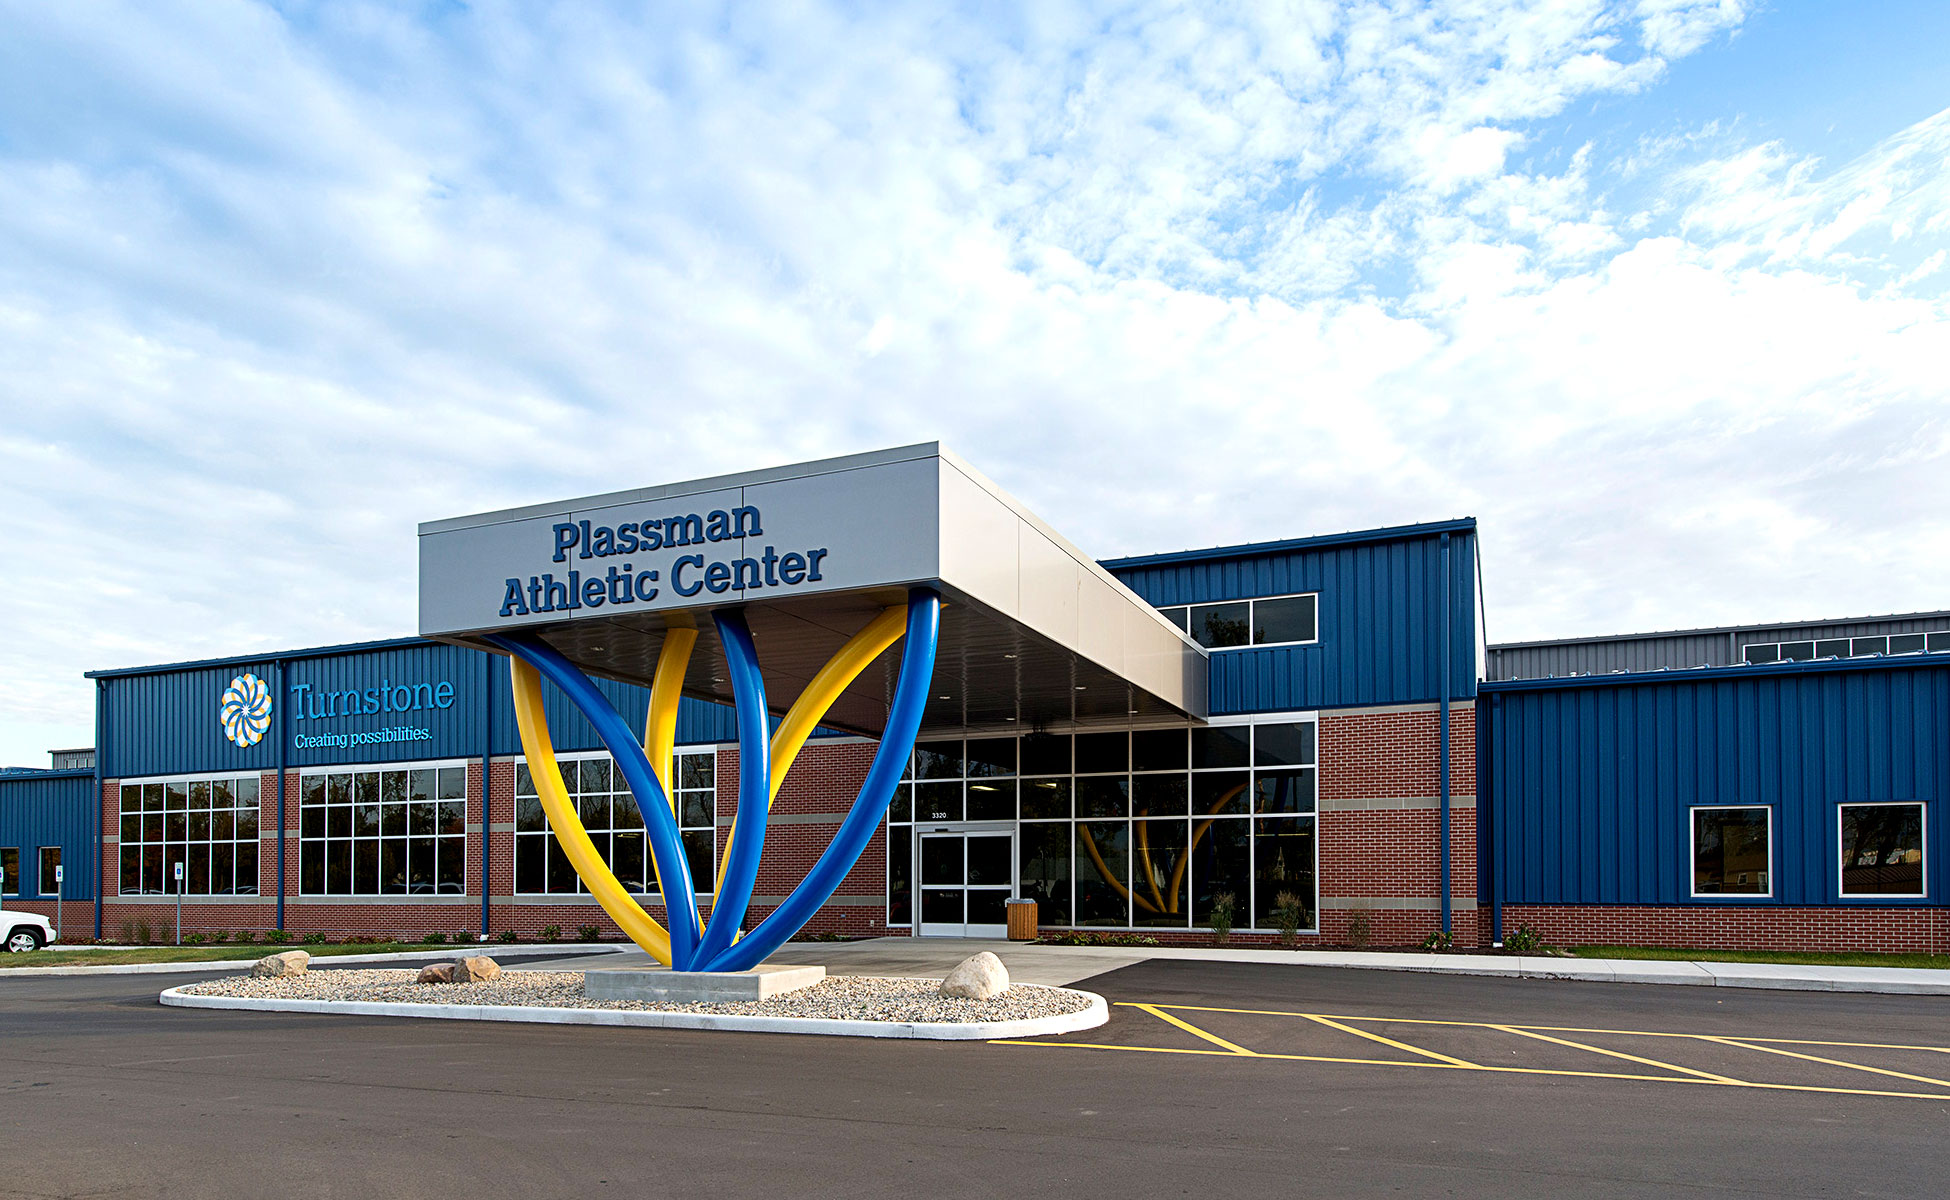 Plassman Athletic Center